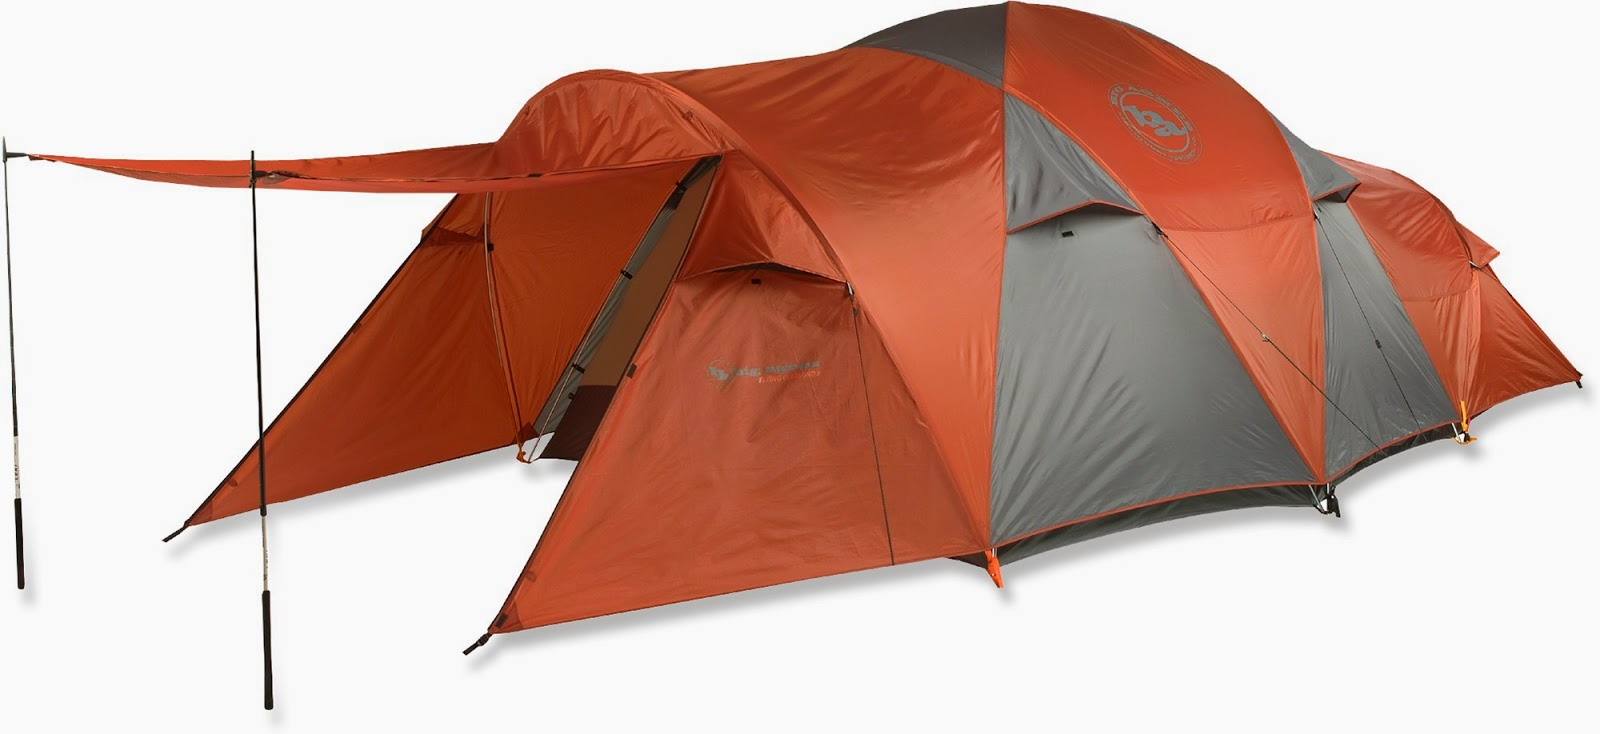 #BIG AGNES FLYING DIAMOND 8 TENT REVIEW  sc 1 st  the good stuff reviews - Blogspot & BIG AGNES FLYING DIAMOND 8 TENT REVIEW | THE GOOD STUFF REVIEWS